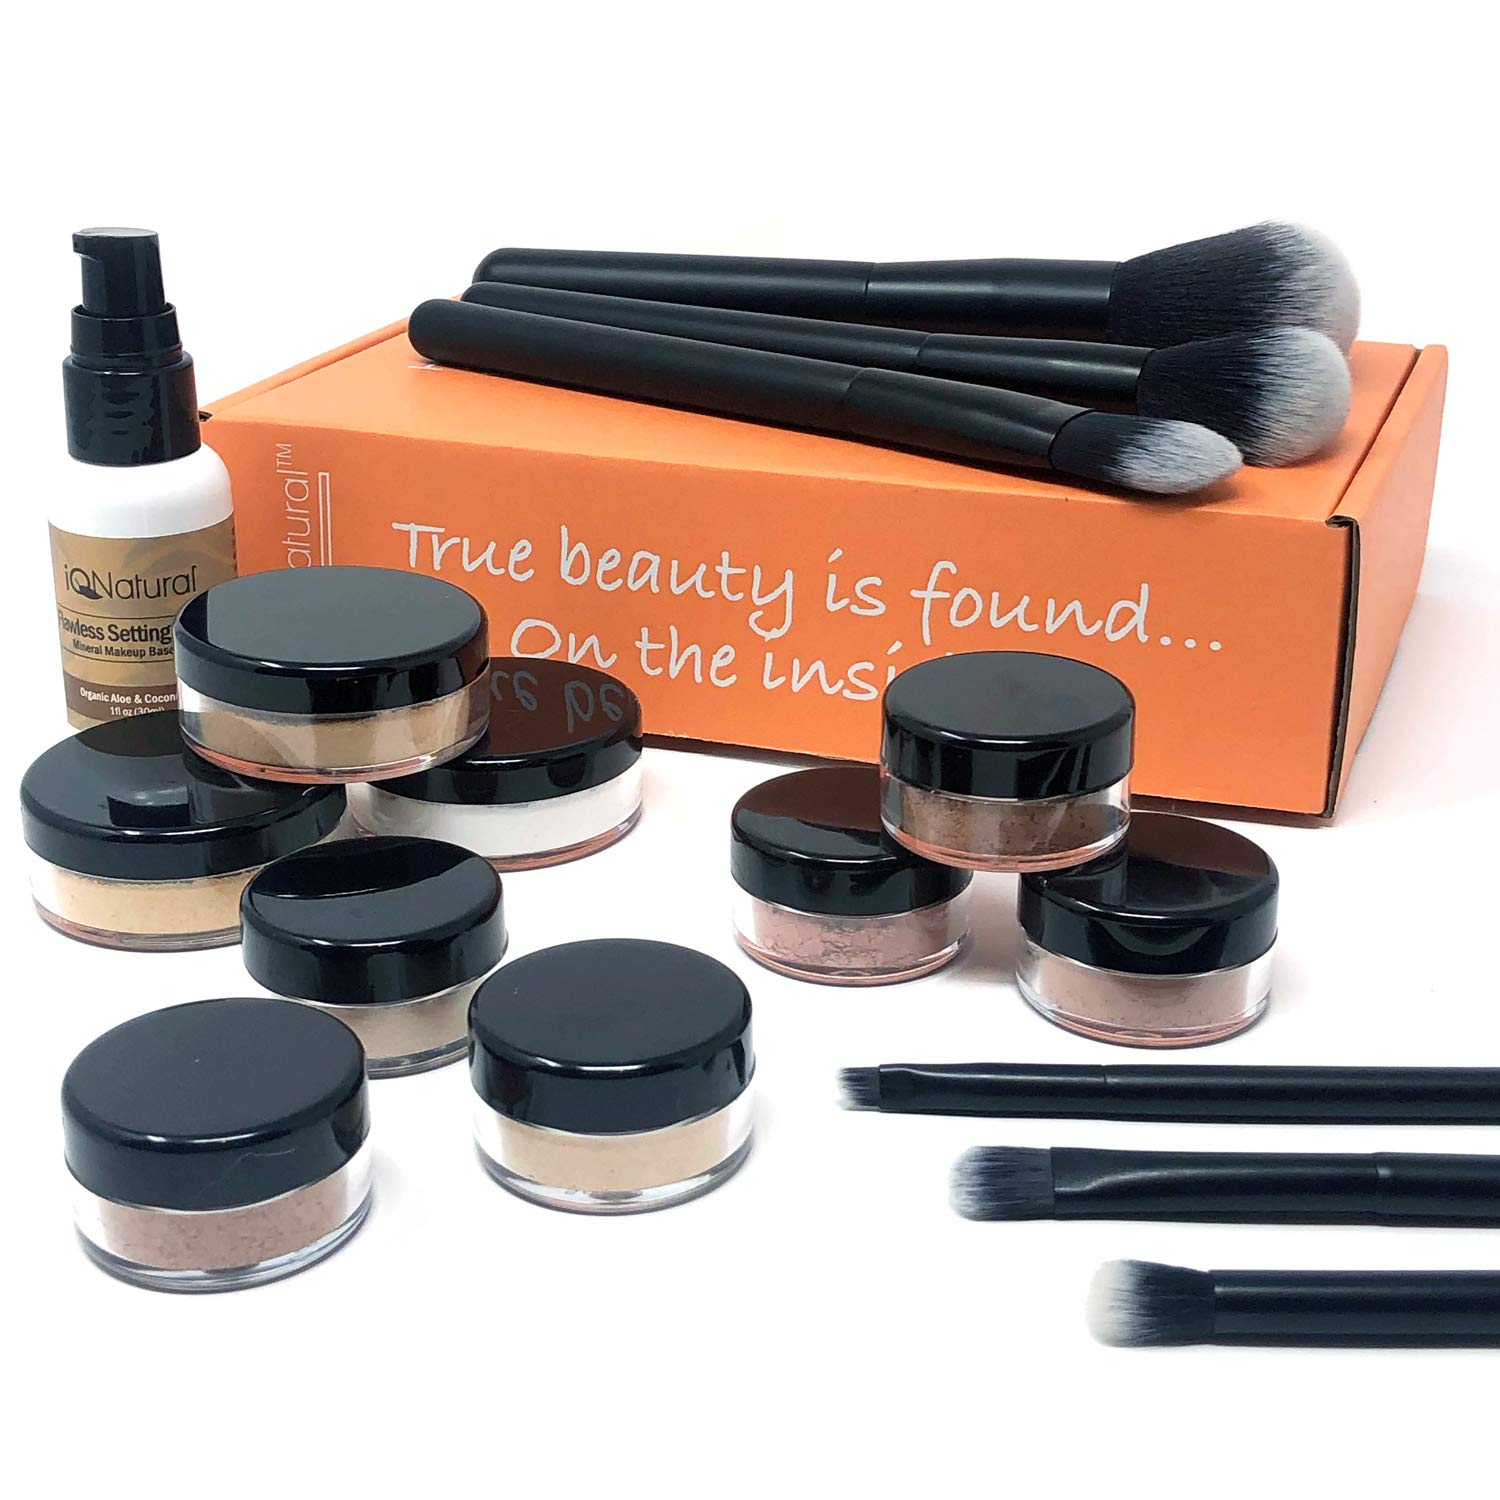 Premium 16 Piece Large Mineral Makeup Kit (Select Shade) - Concealer, Bronzer, Eye Shadow, Setting Powder, 2 Full Size Mineral Foundation, Primer - Create A Natural Flawless Look by iQ Natural